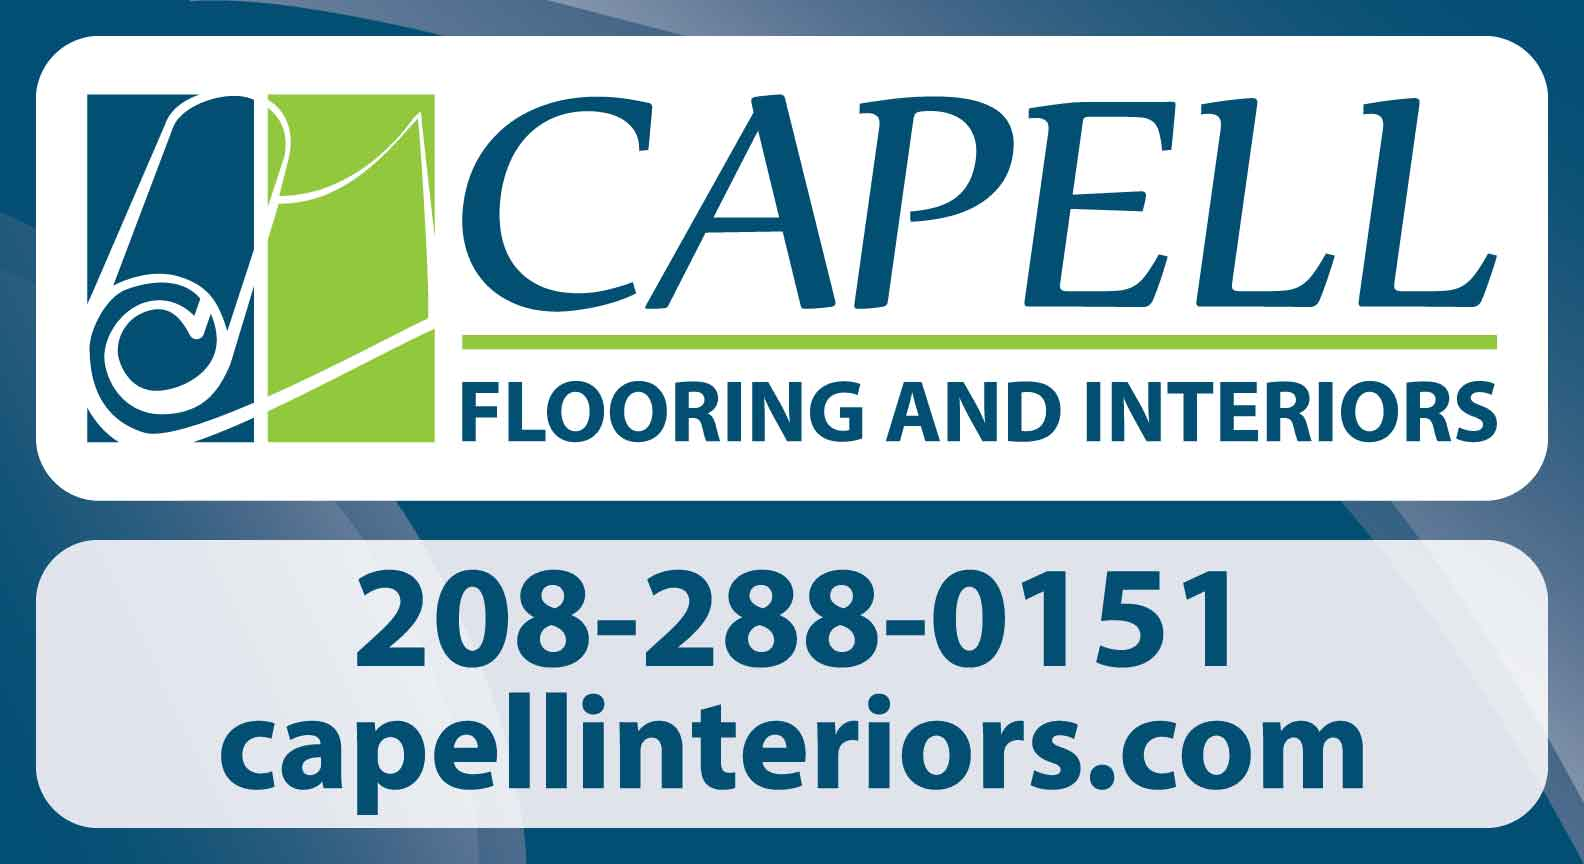 Capell Flooring and Interiors, Boise Flooring